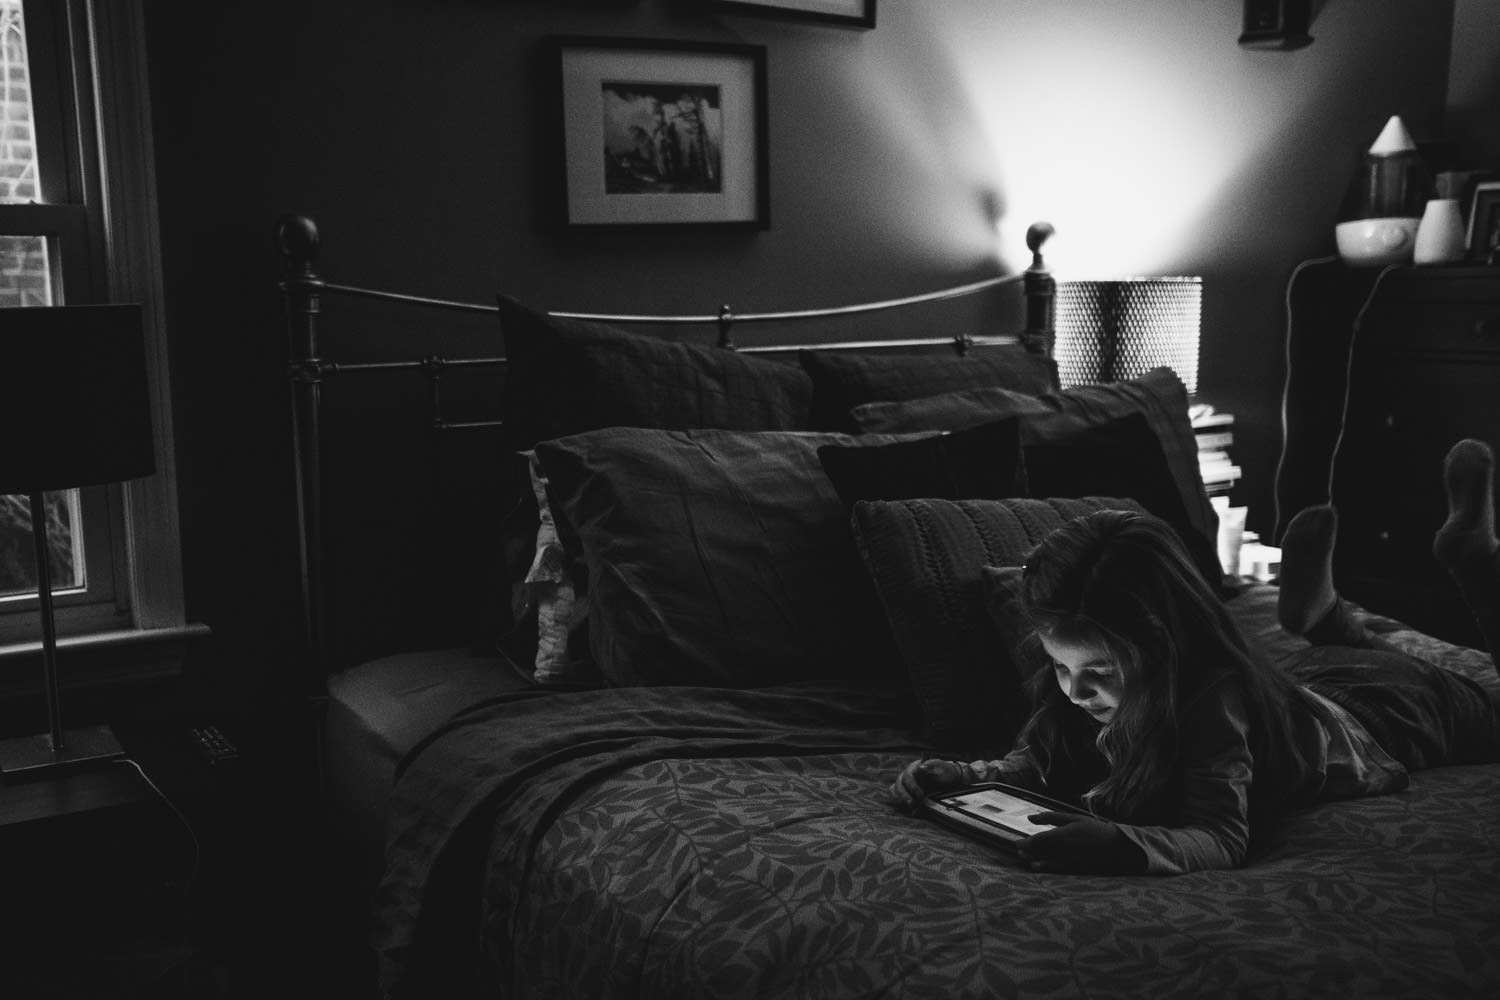 A little girl plays with an iPad on her parents' bed.